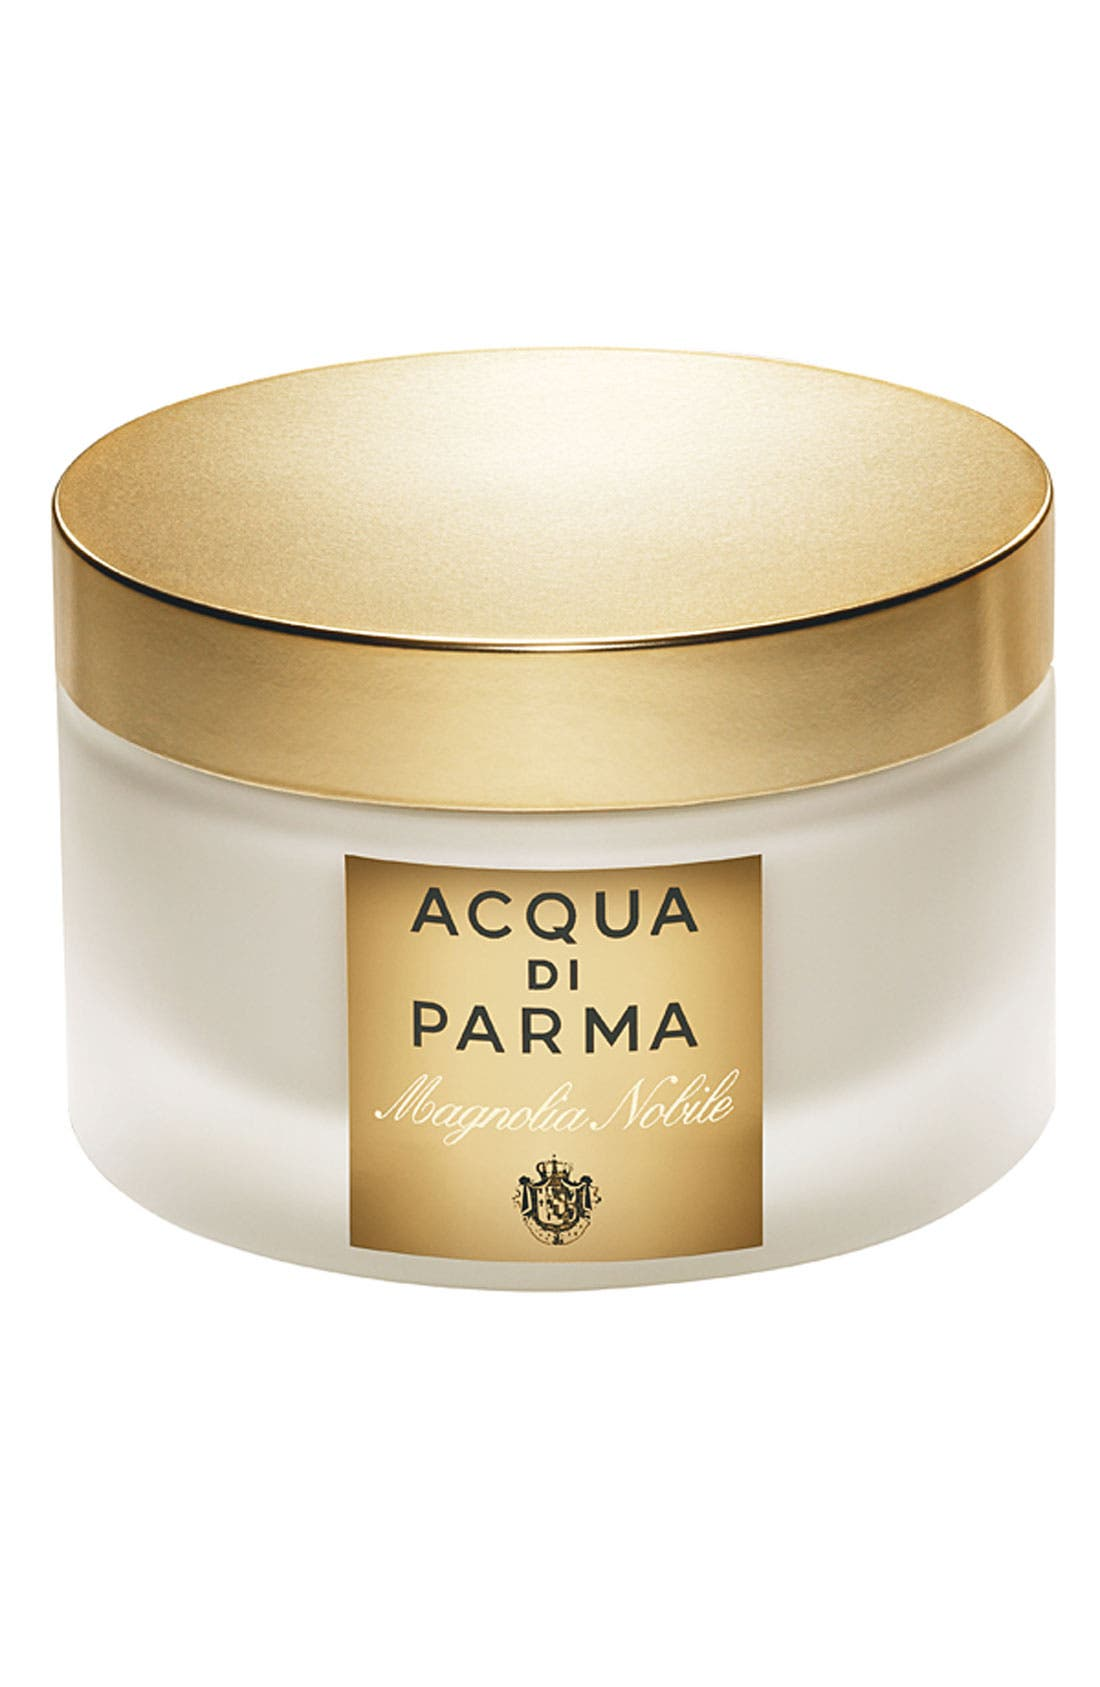 ACQUA DI PARMA Magnolia Nobile Body Cream, Main, color, NO COLOR